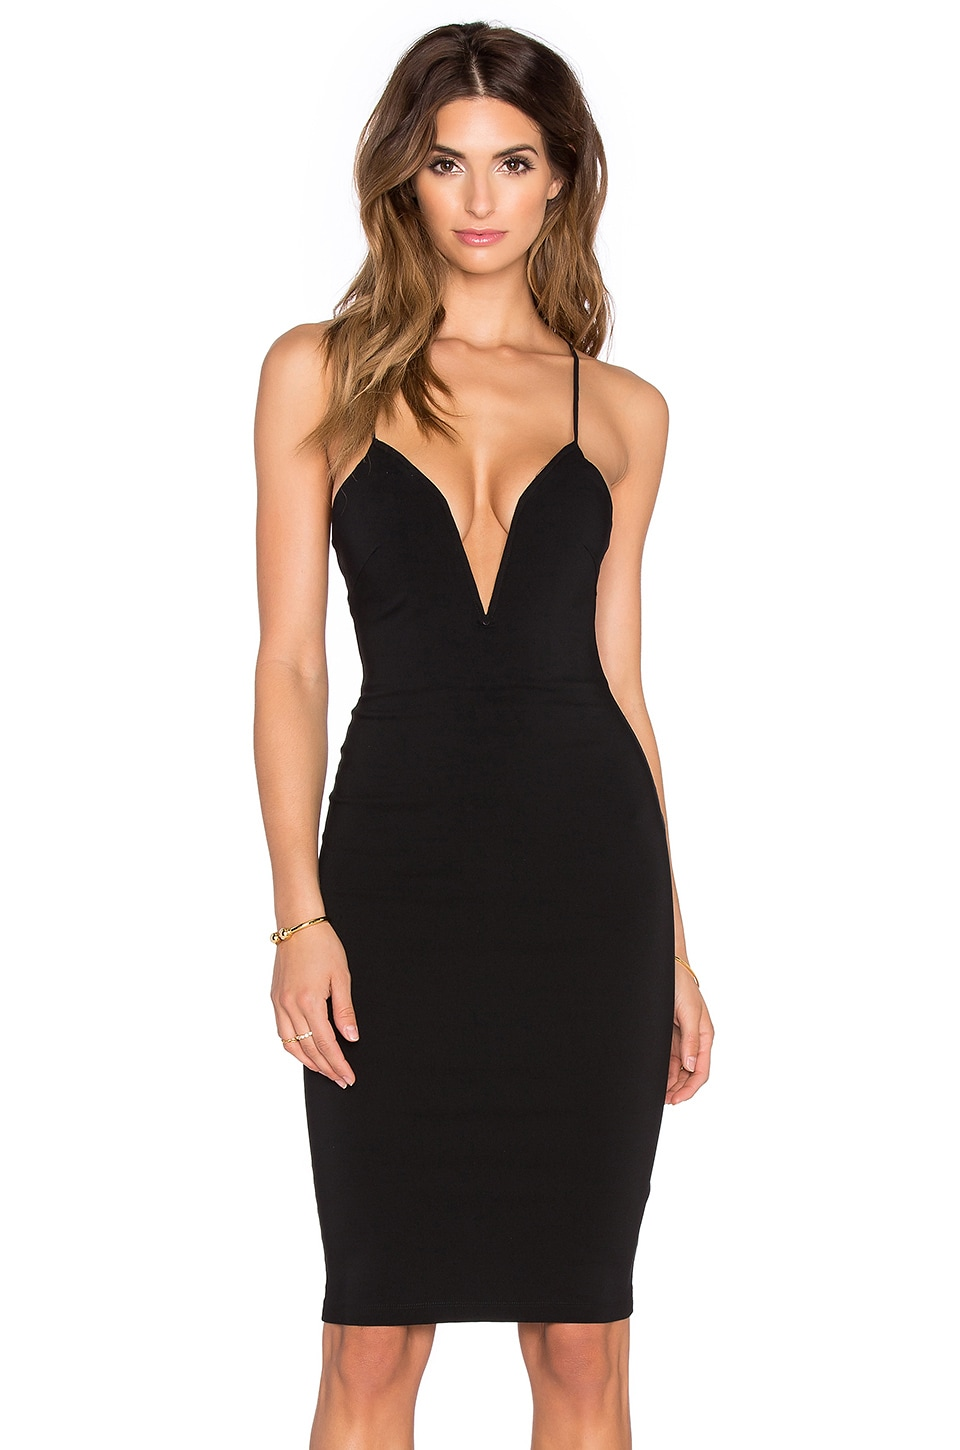 RISE OF DAWN Sass Midi Dress in Black